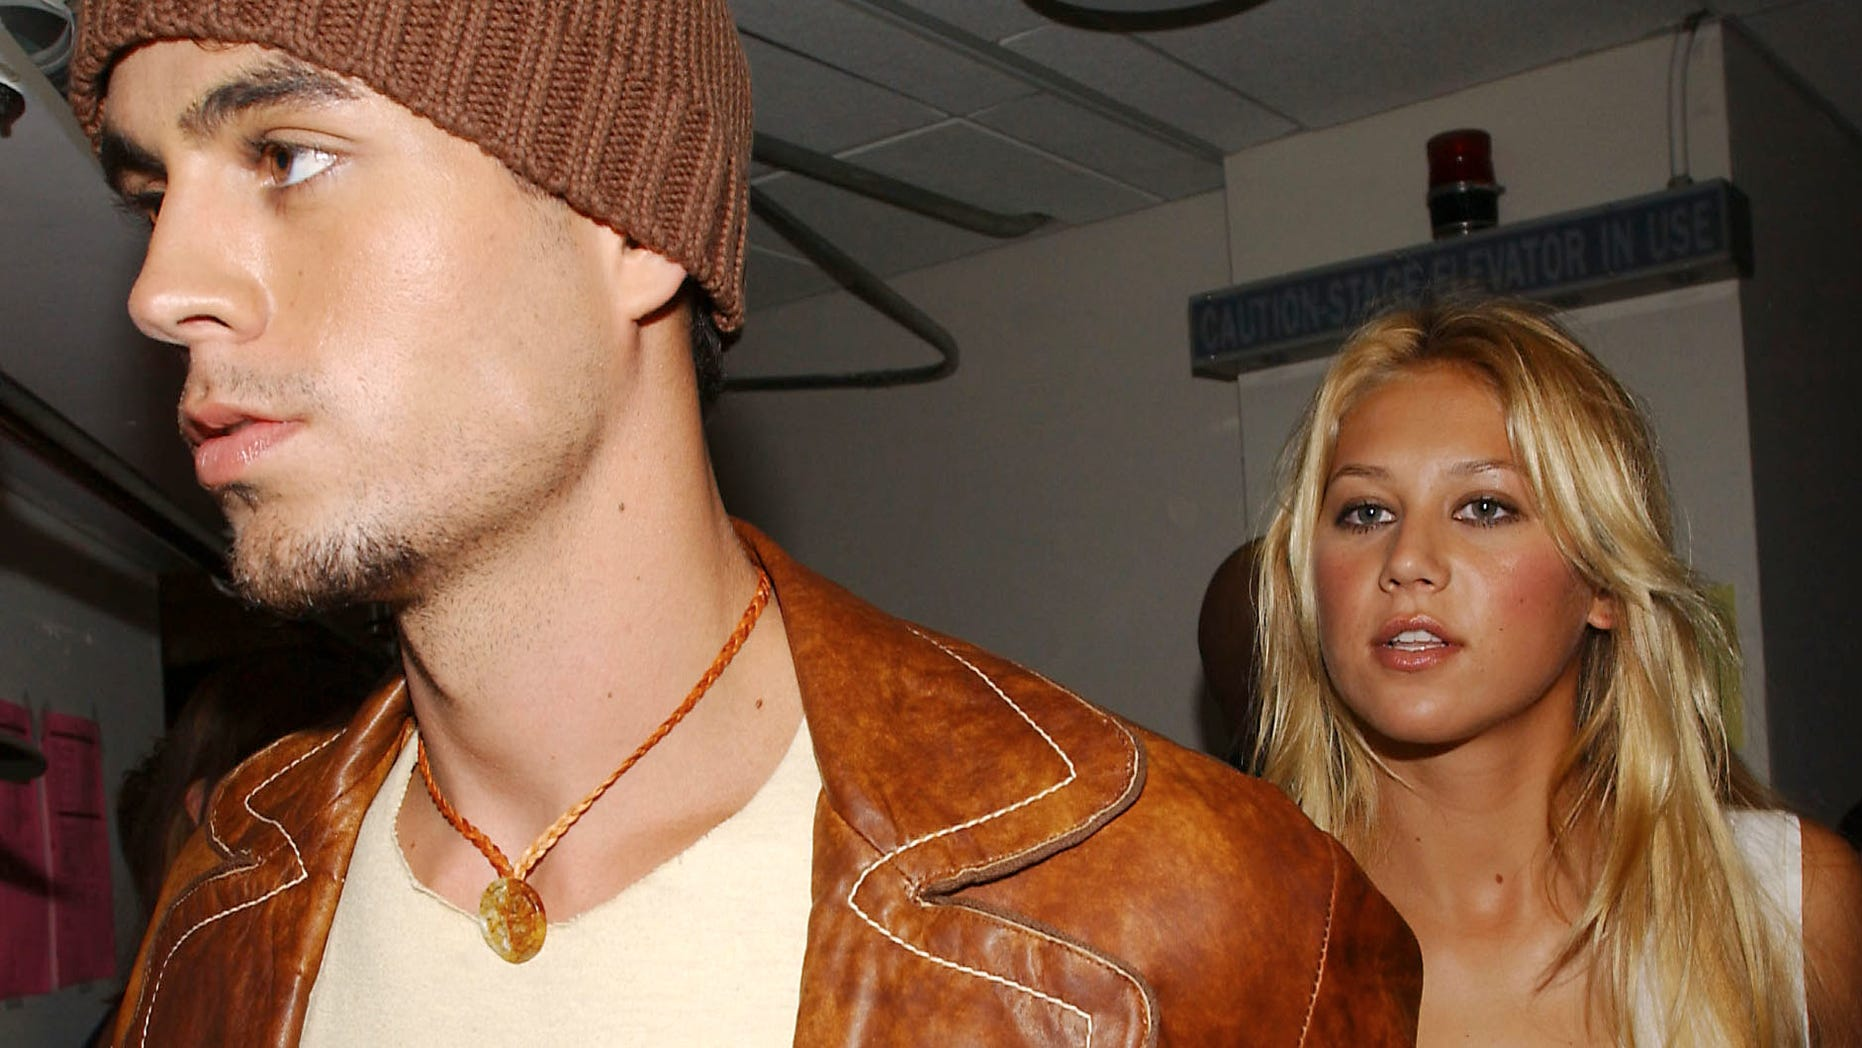 Enrique Iglesias and Anna Kournikova backstage at the 2002 MTV Video Music Awards at Radio City Music Hall in New York City, August 29, 2002. Photo by Frank Micelotta/ImageDirect.